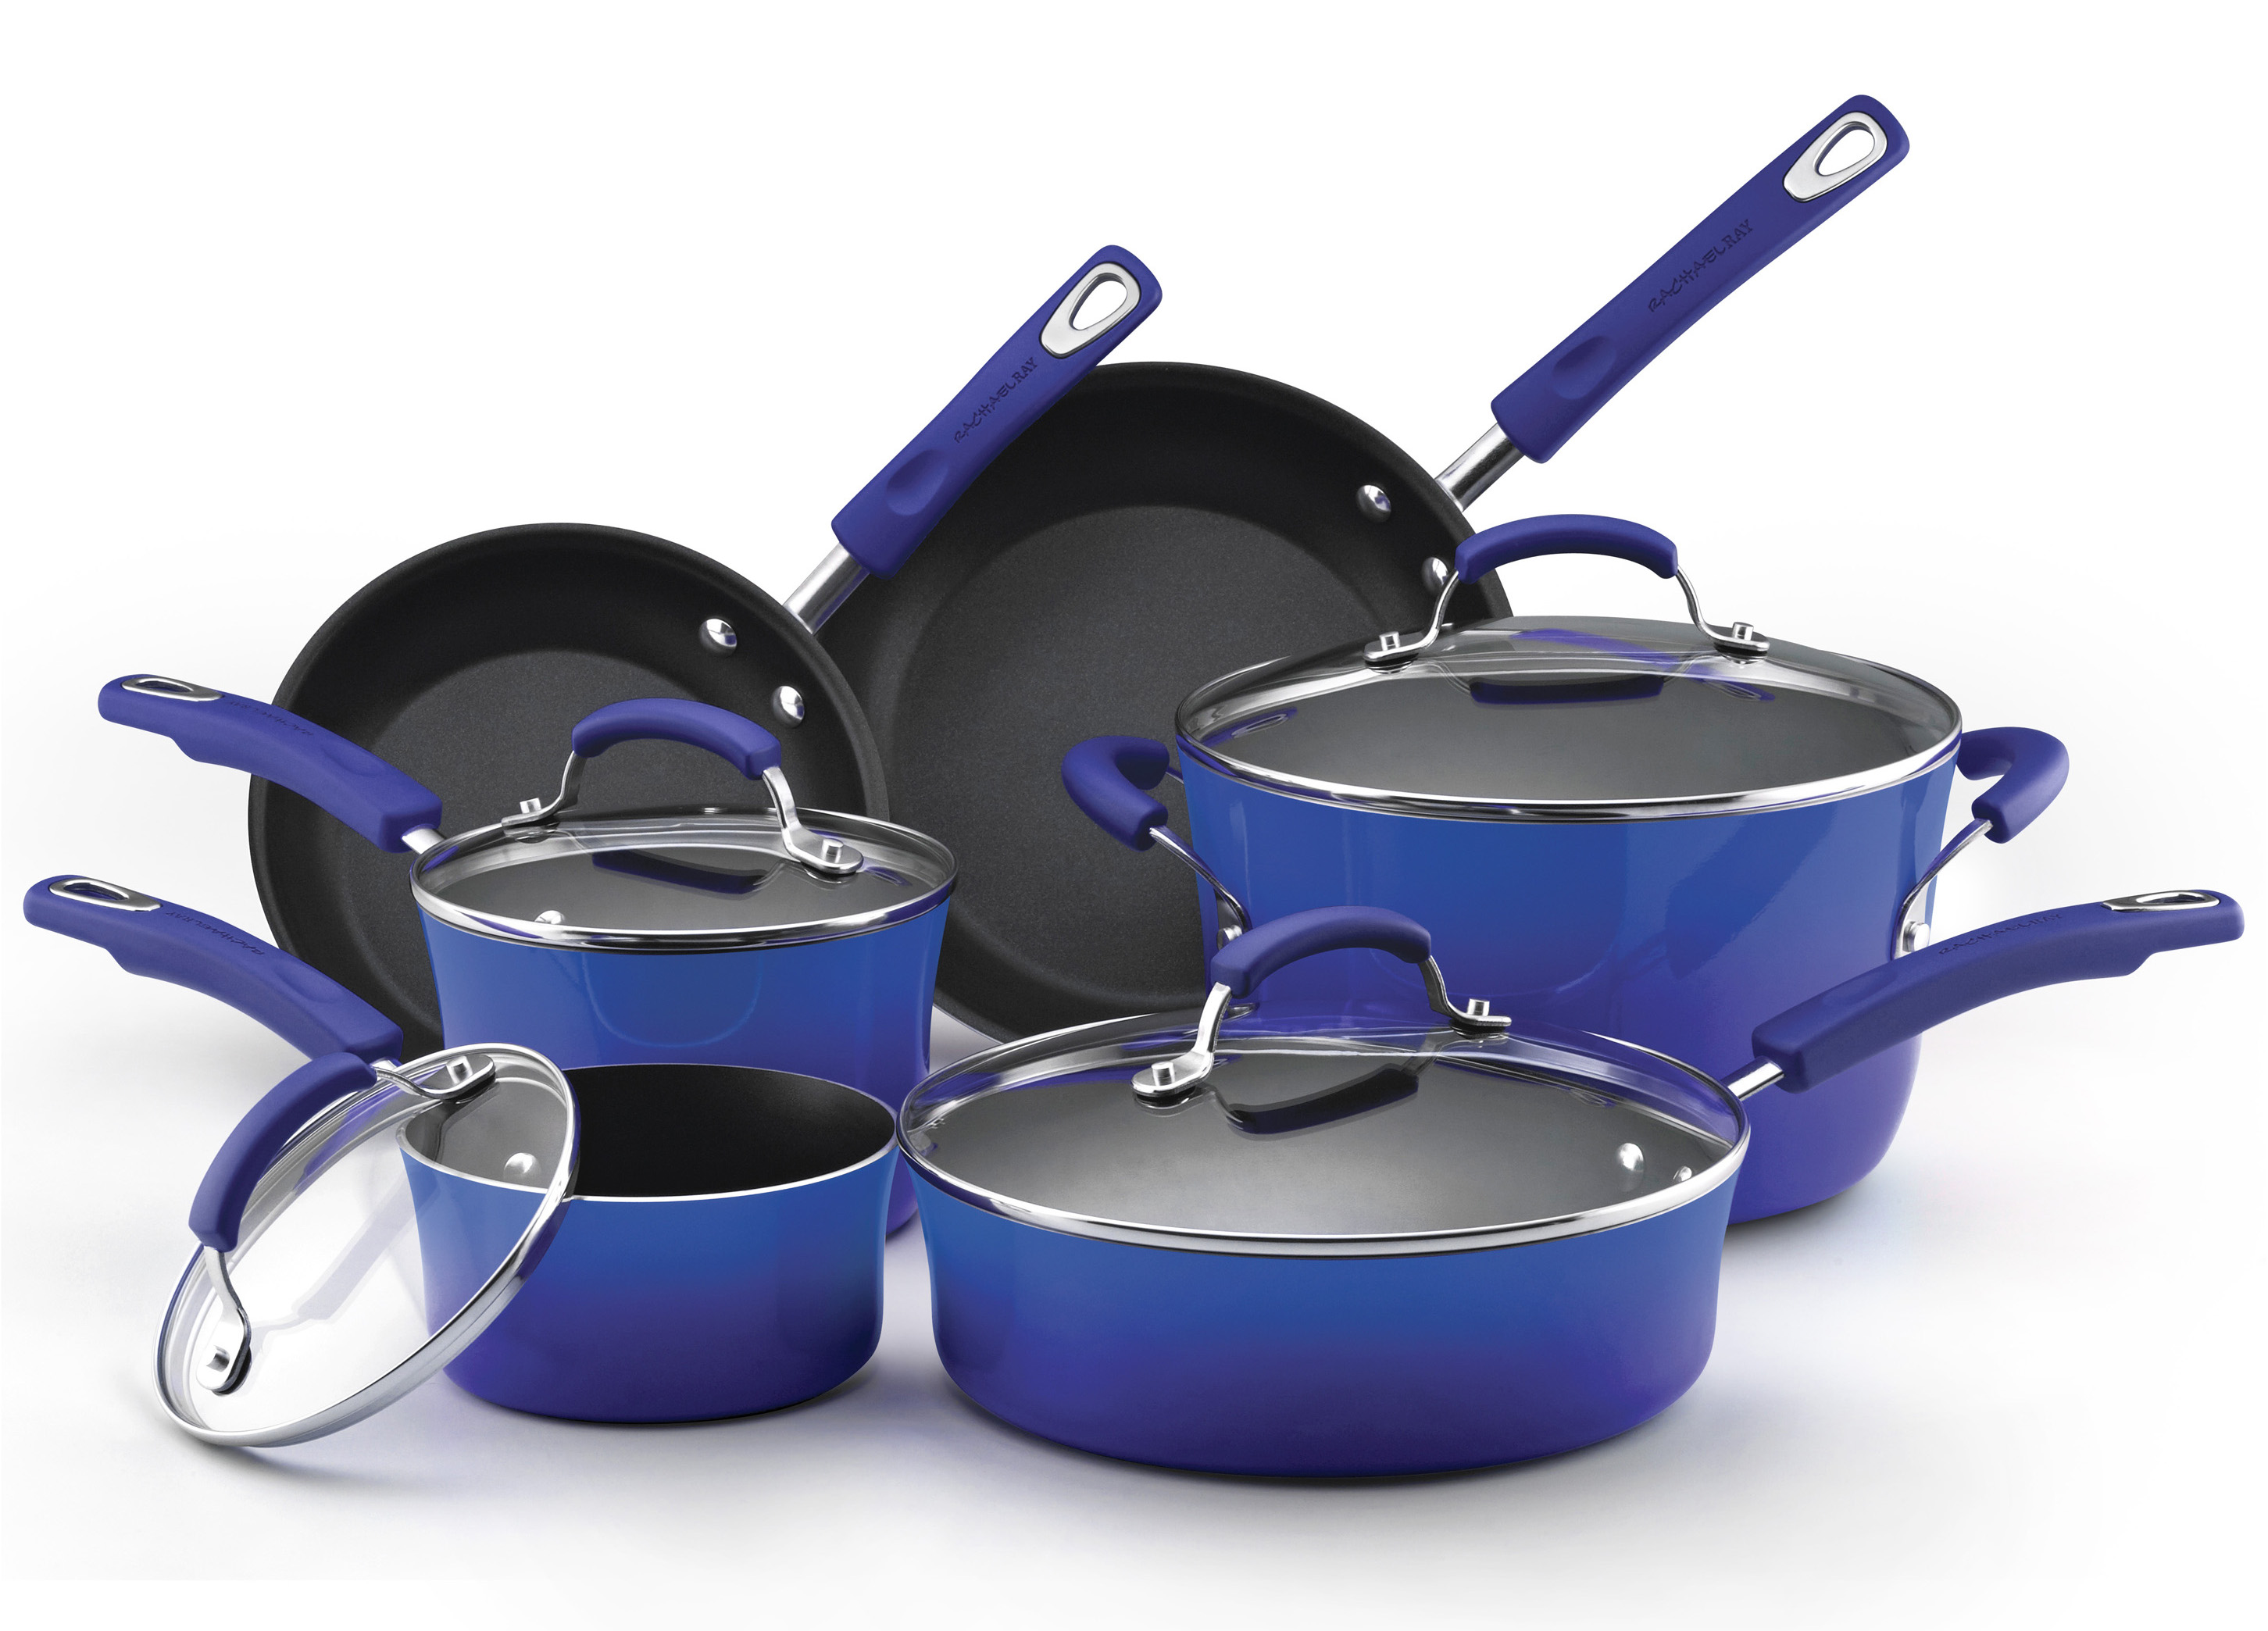 Rachael Ray Blue Porcelain Enamel II 10 Piece Cookware Set